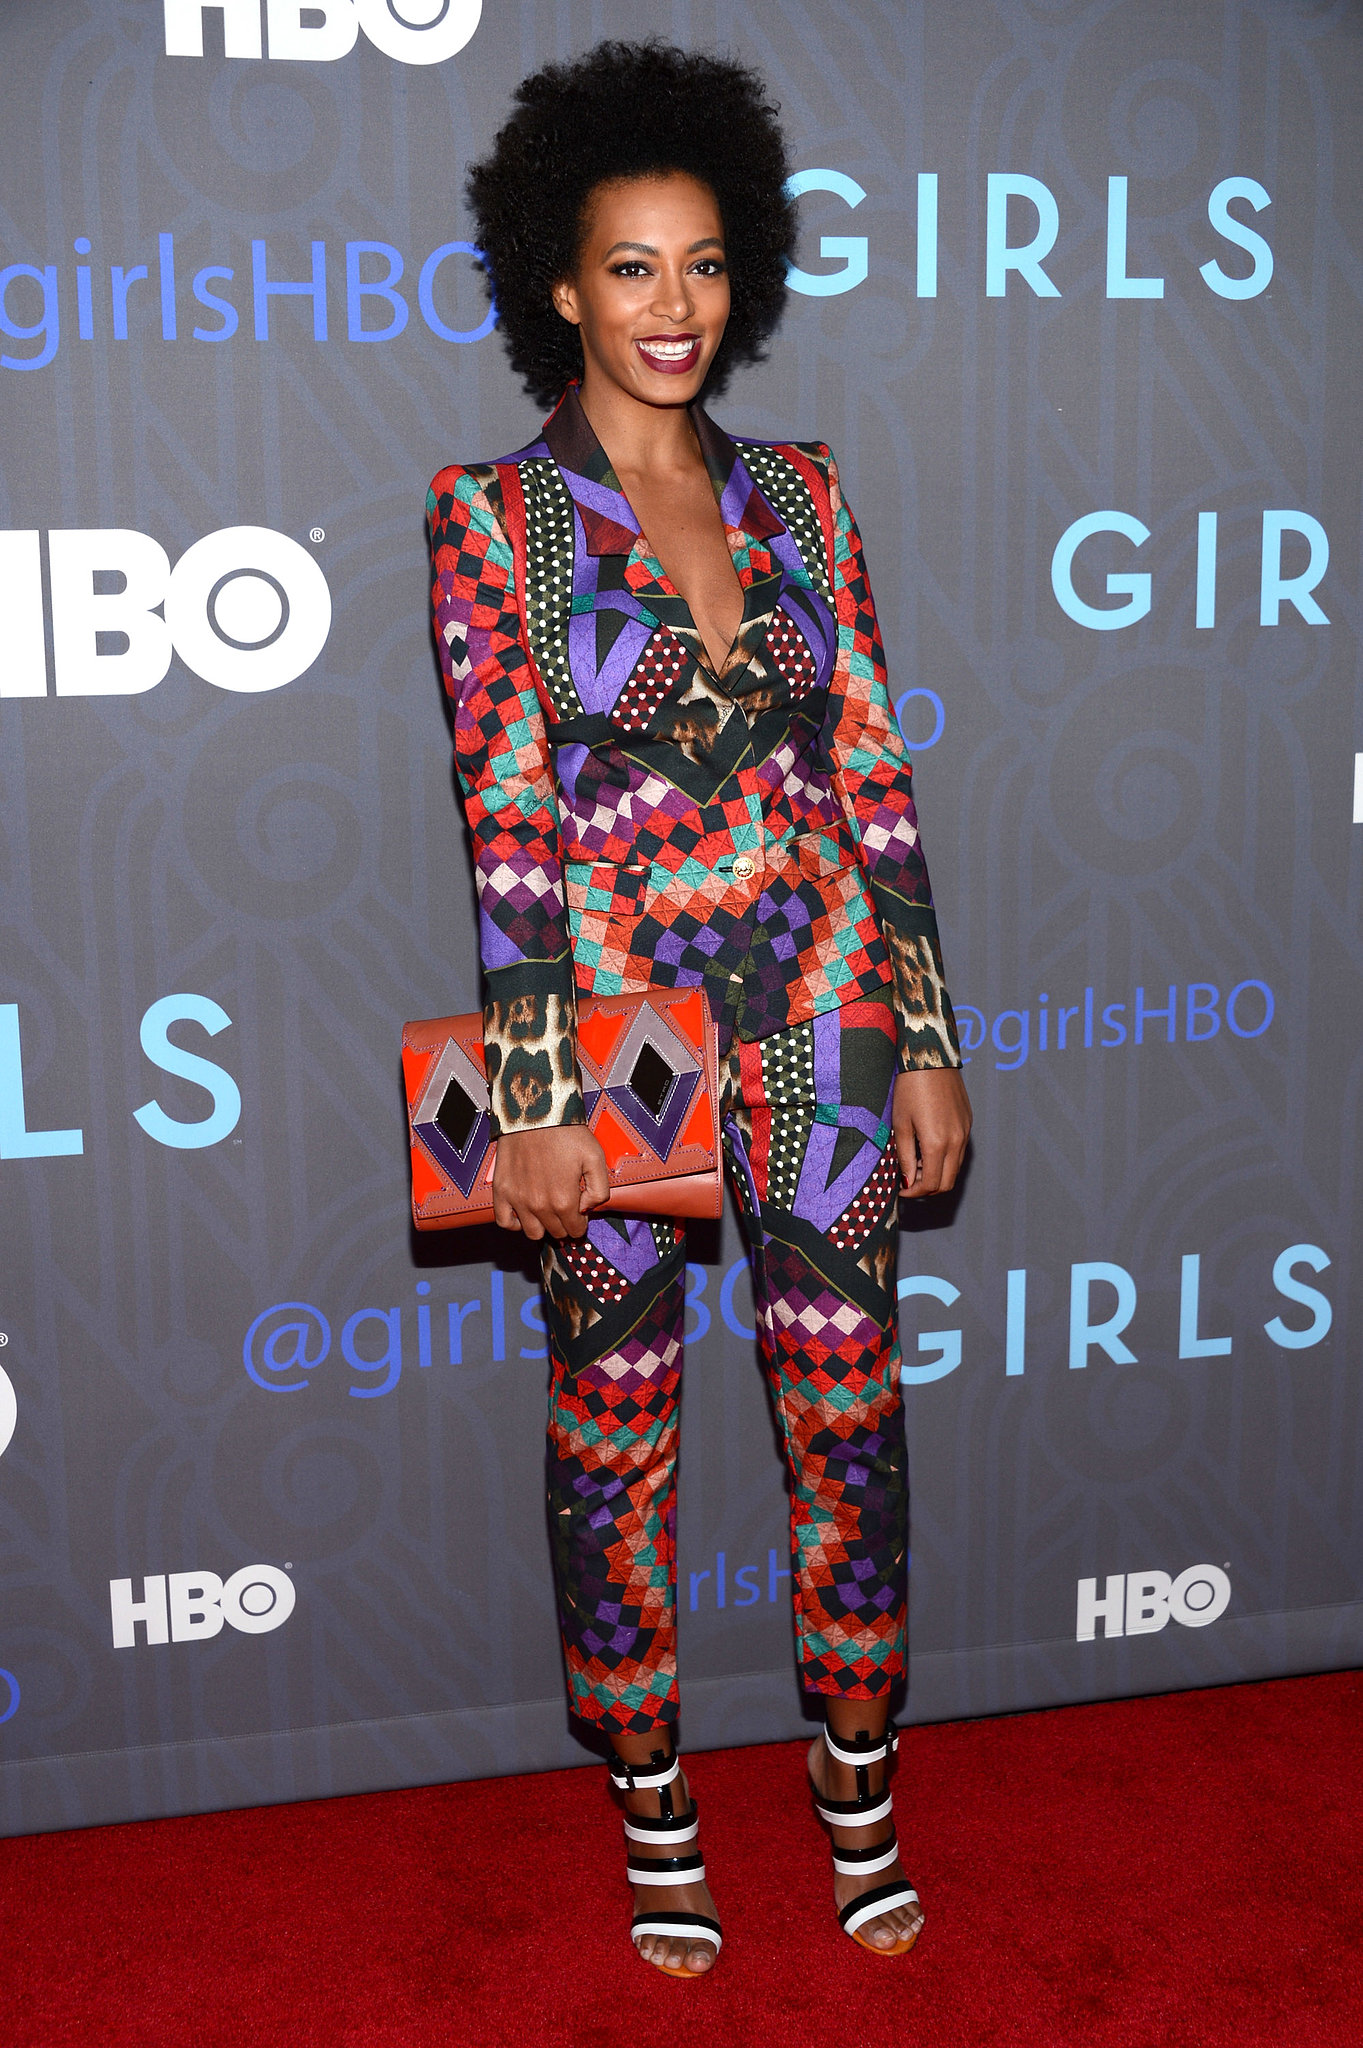 In signature Solange fashion, the singer wowed in a geometric-print Just Cavalli suit, black-and-white Bottega Veneta sandals, and a coordinating colorful clutch at the season-two premiere of Girls in NYC.